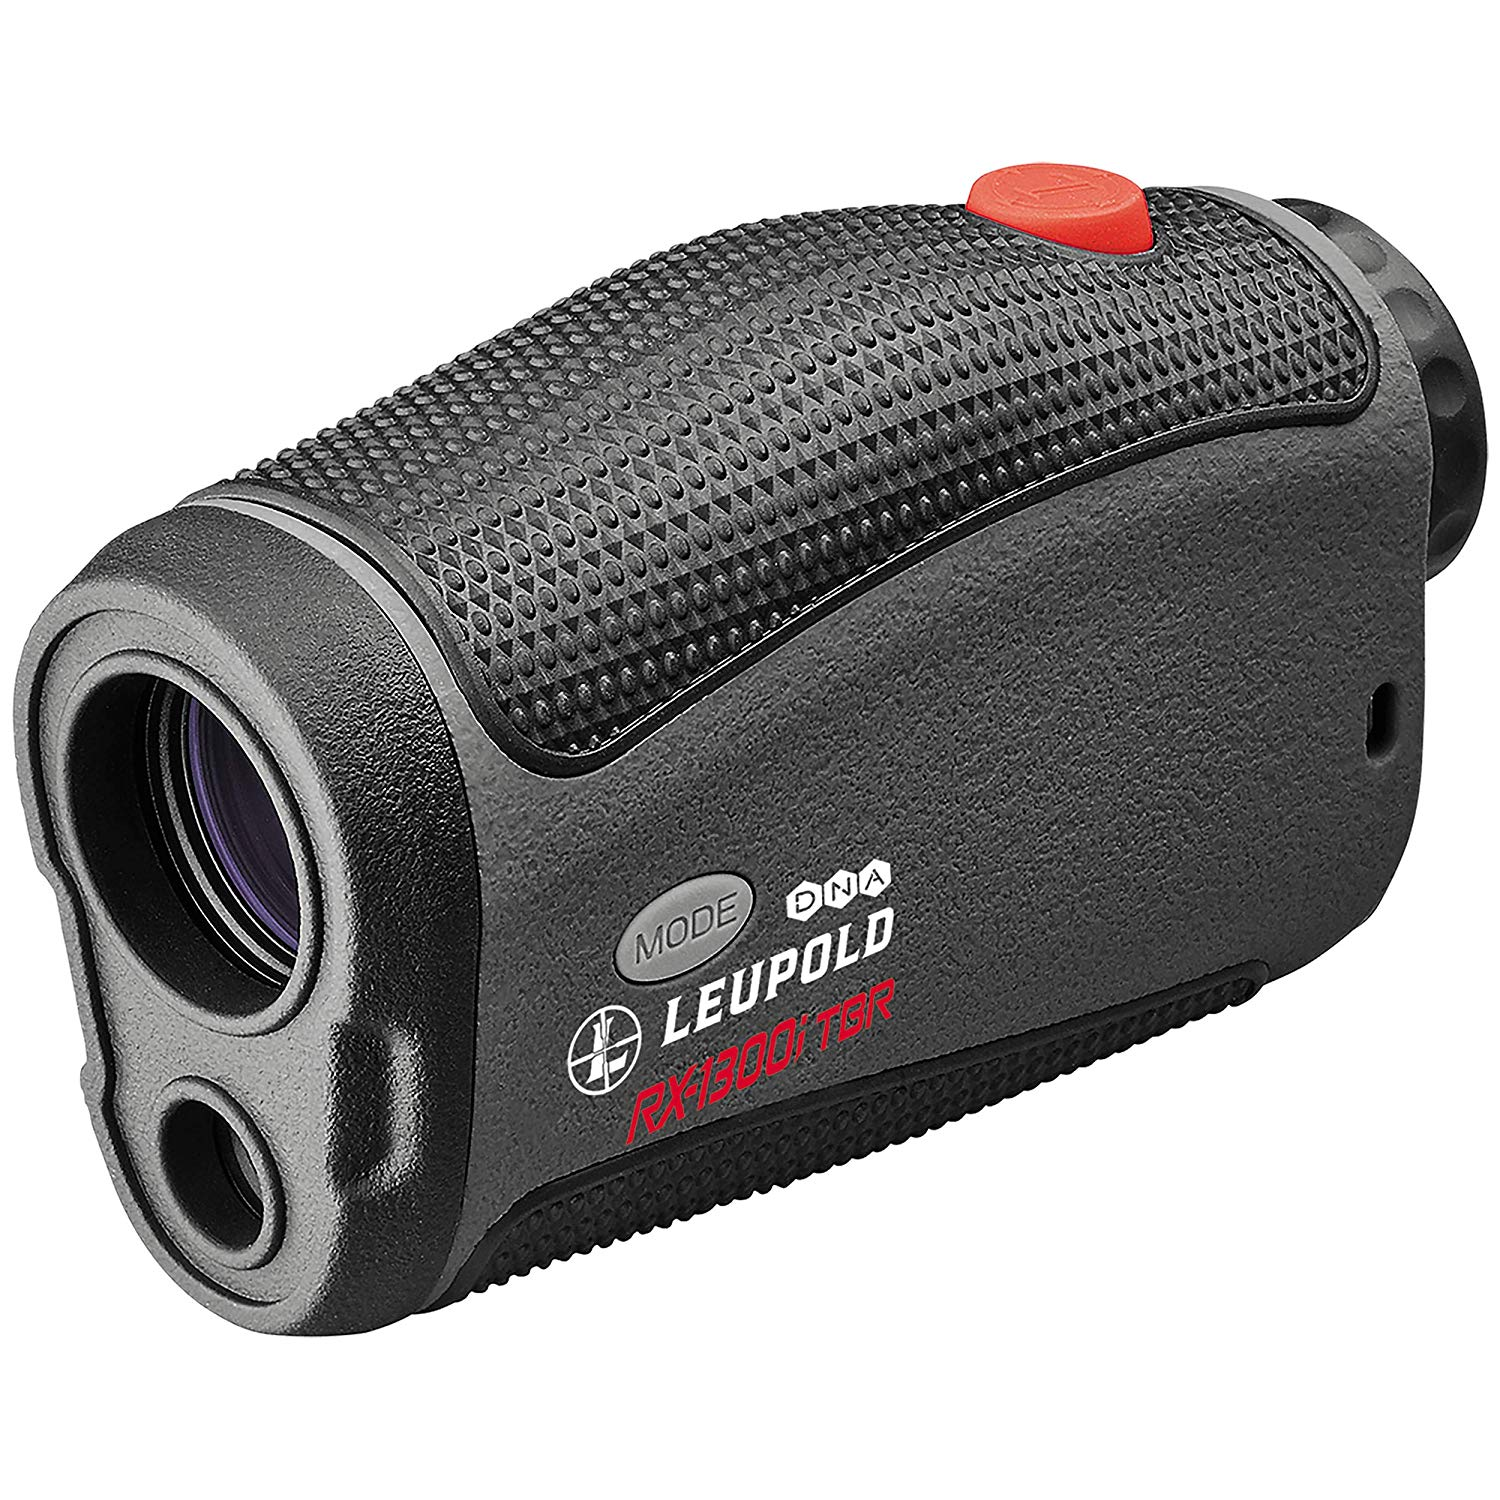 Leupold RX-1300i TBR Laser Rangefinder with DNA